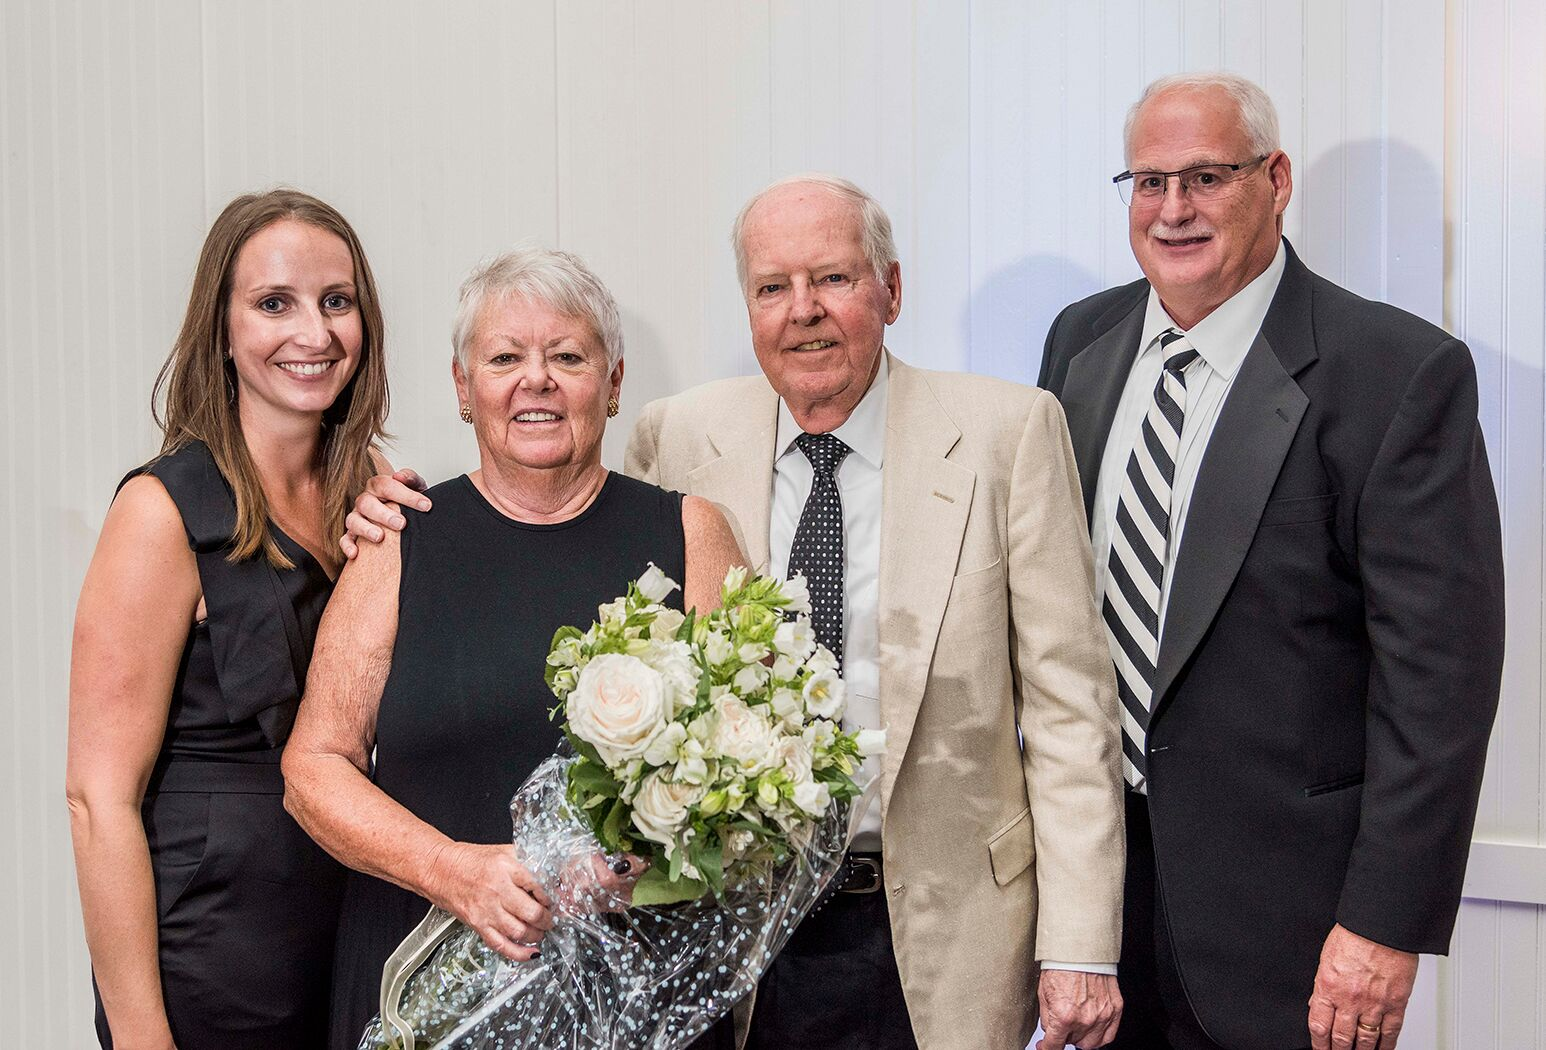 From left: Samantha Vigliotta (vice president, Peconic Bay Medical Center), Emilie Corey (chair, Peconic Bay Medical Center Foundation Board of Directors), Michael Corey and Andrew J. Mitchell (president & CEO, Peconic Bay Medical Center).